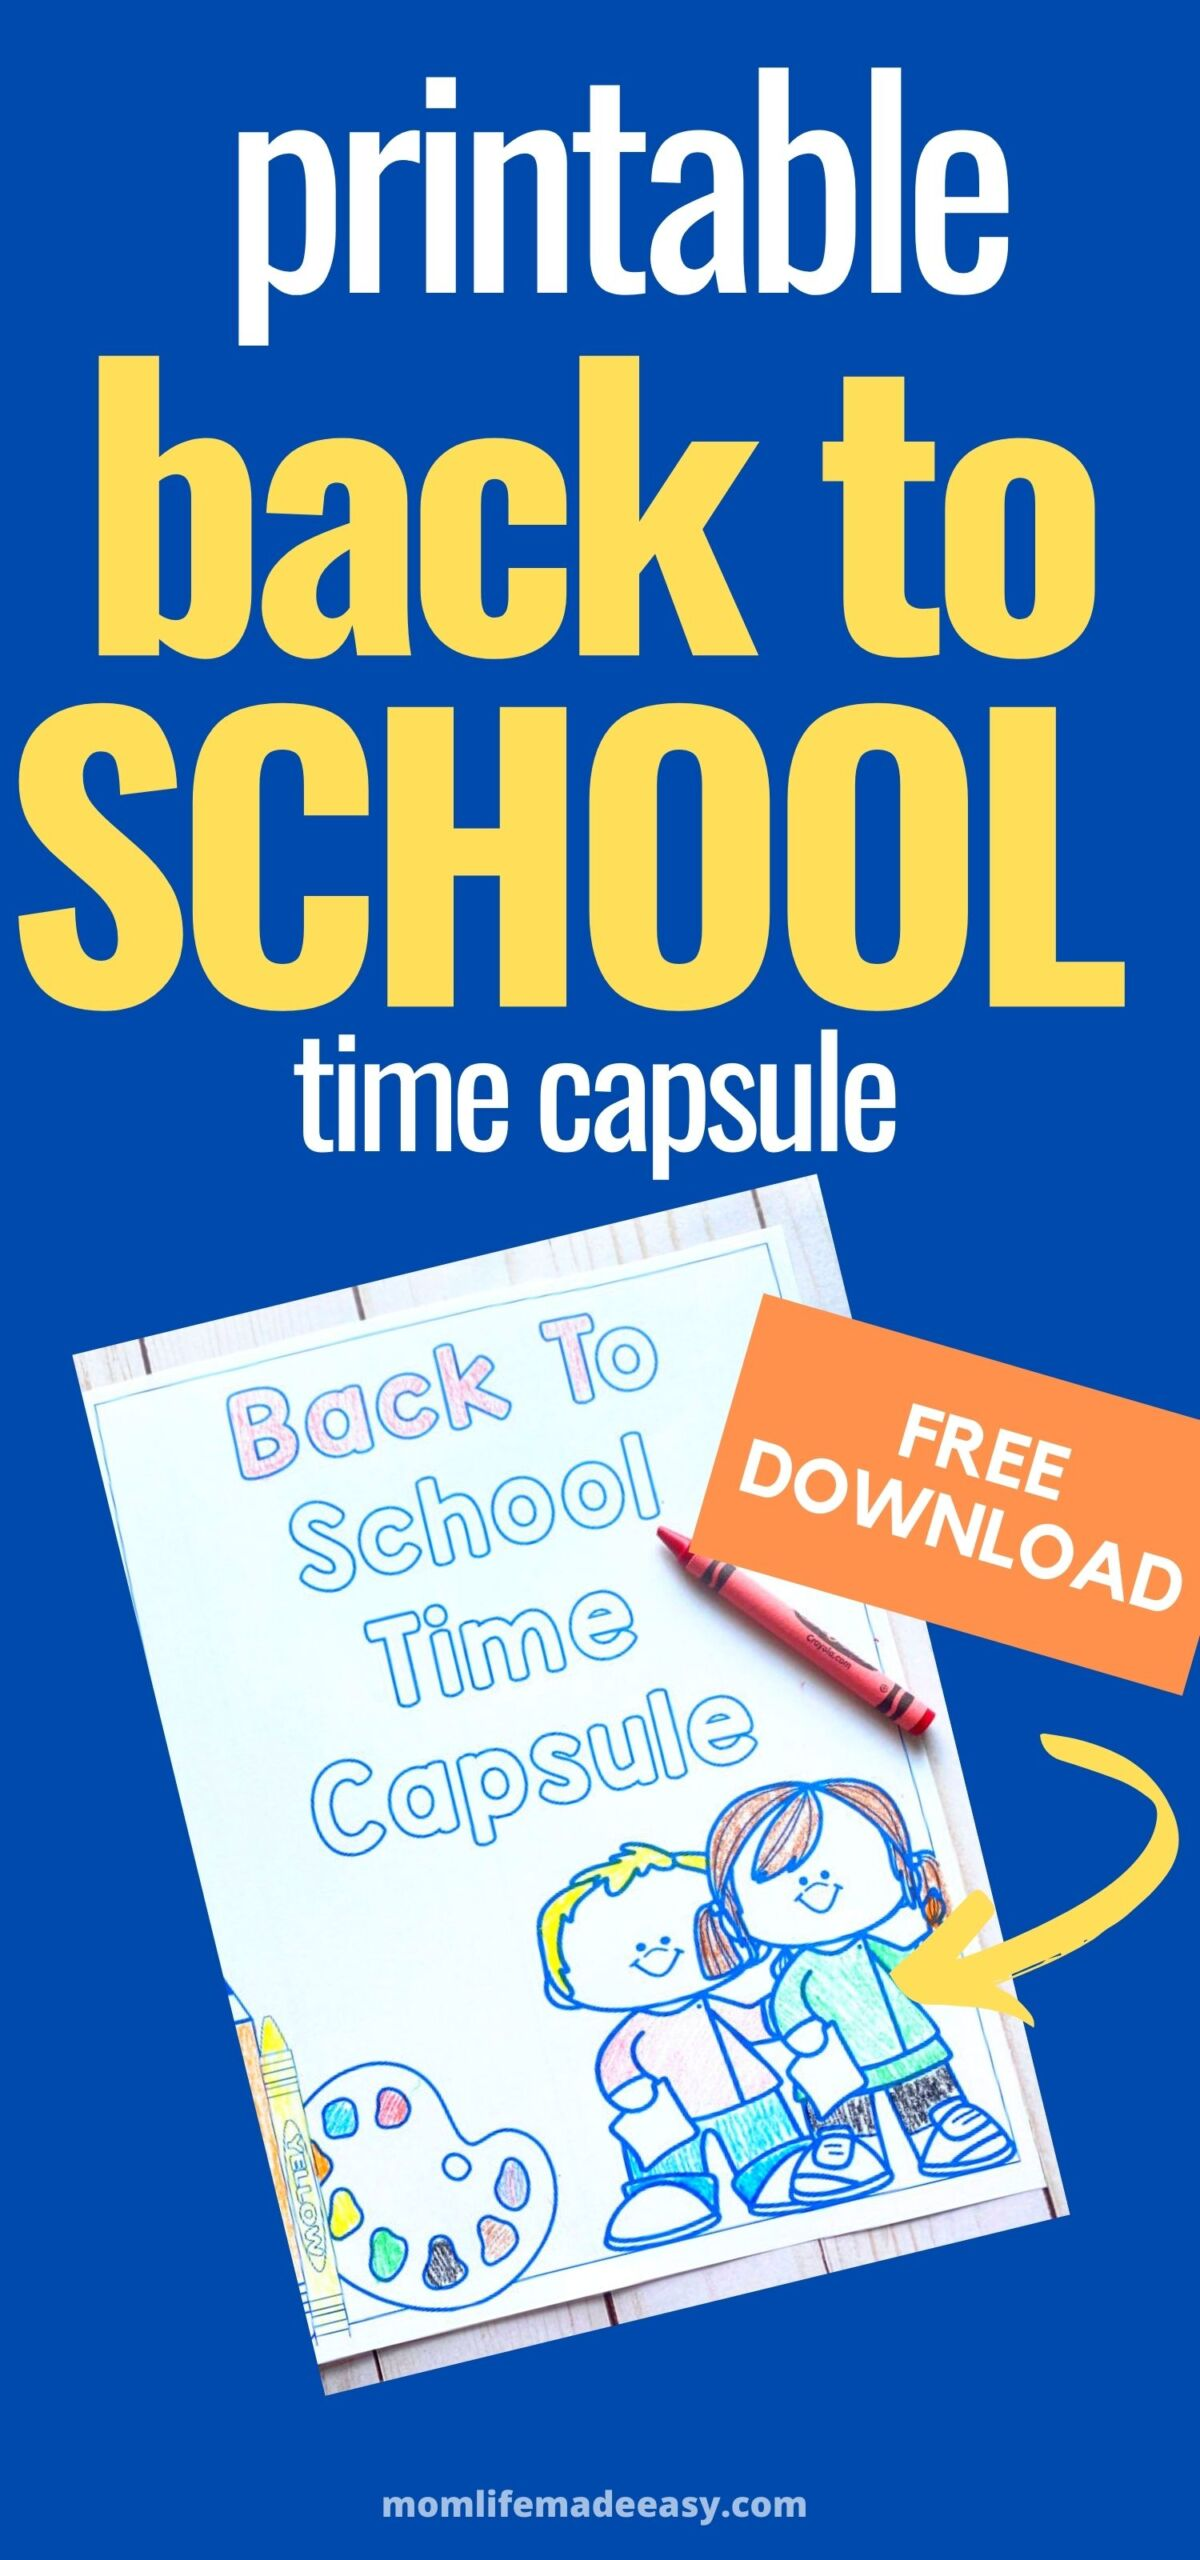 back to school printable time capsule activity promotional image